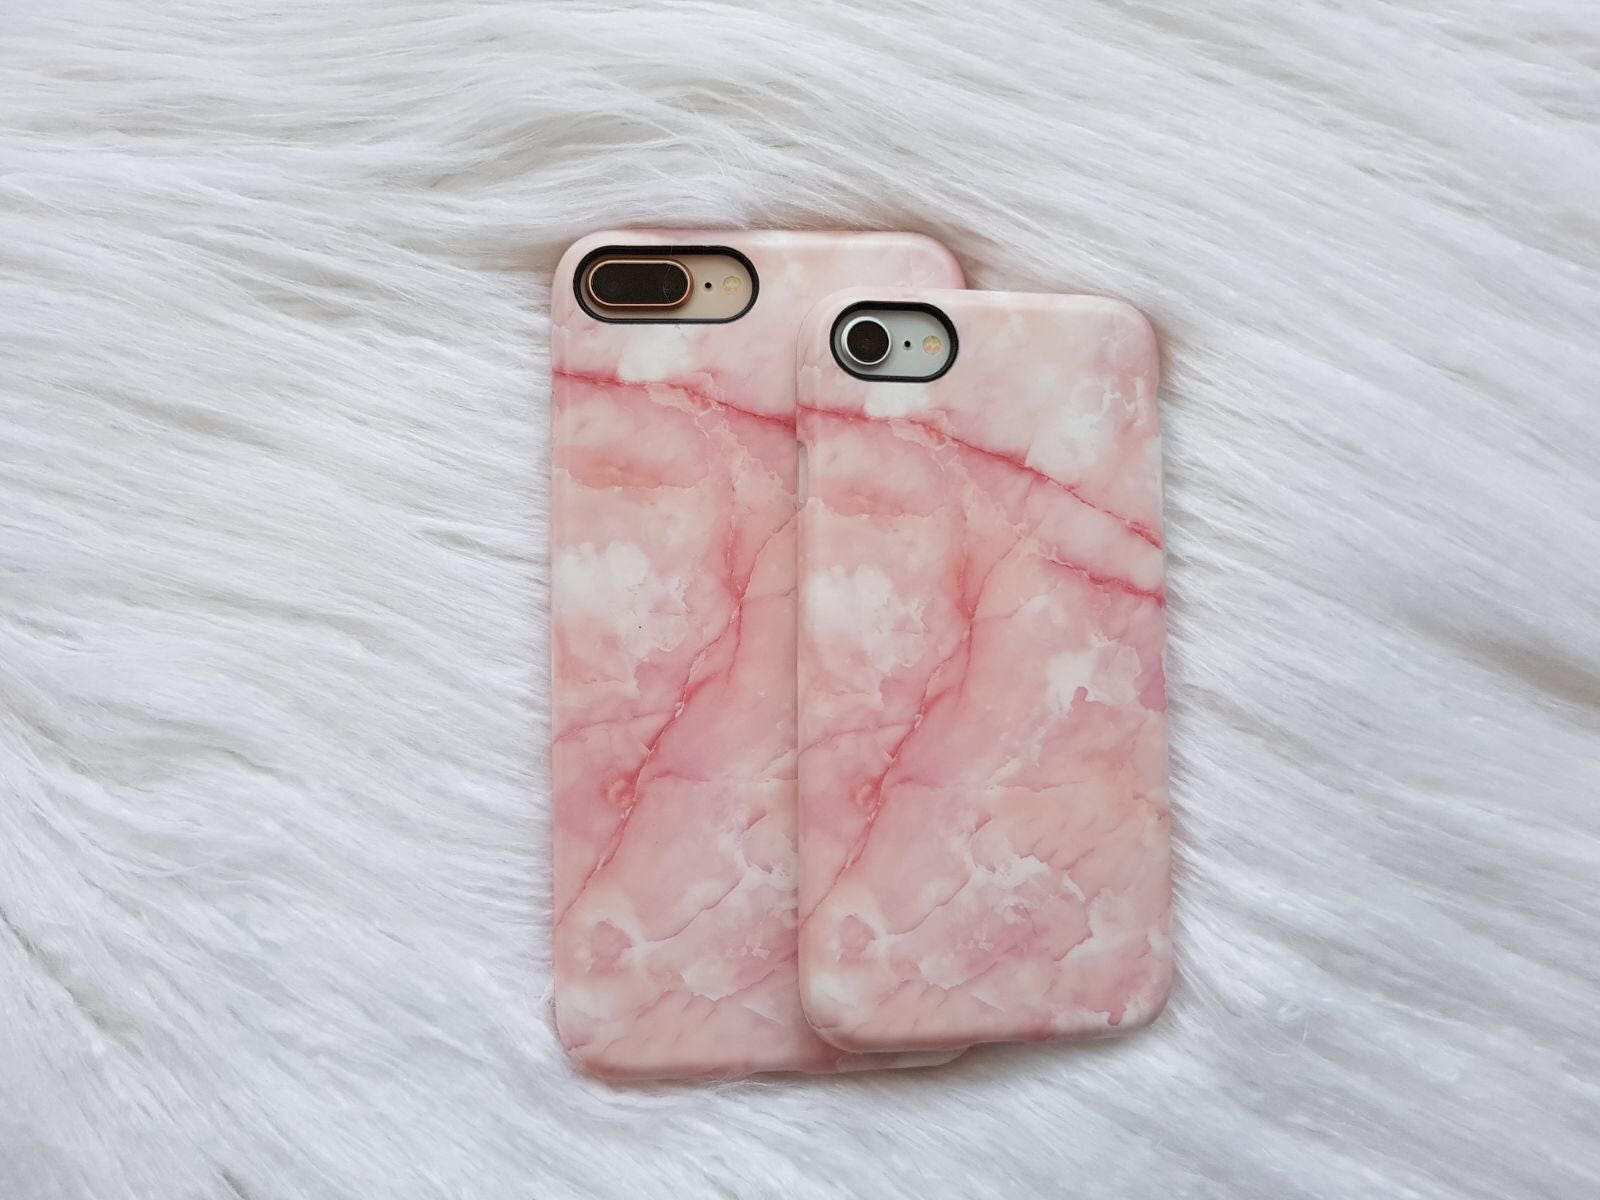 Best Wallpaper Marble Cotton Candy - il_fullxfull  Gallery_597948.jpg